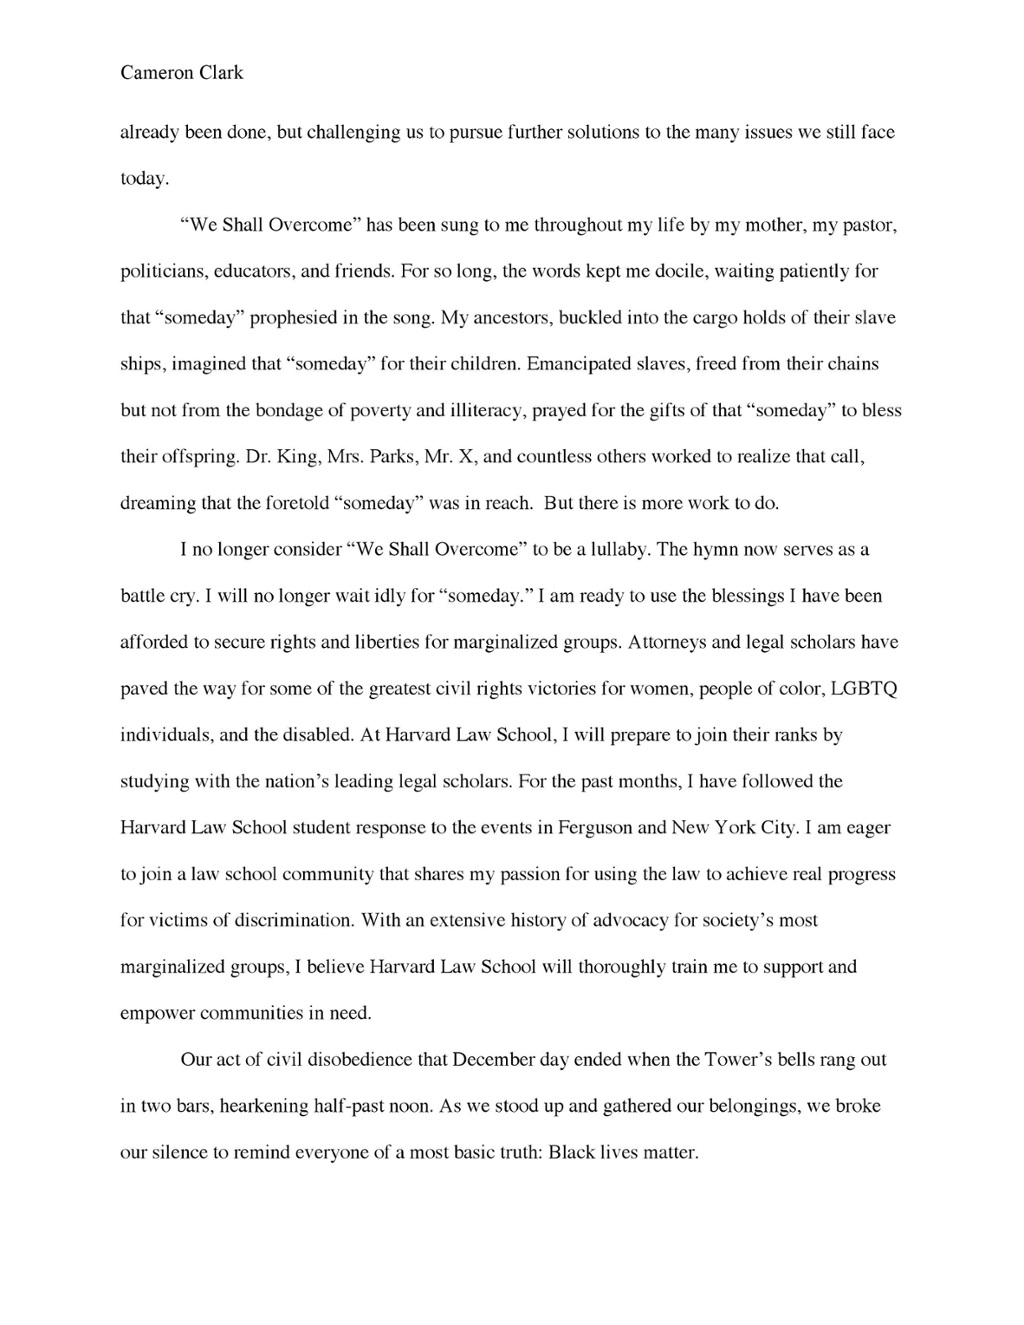 High School Essays  Health And Wellness Essay also Student Life Essay In English  Law School Personal Statements That Succeeded  Top Law  Essay Writing Topics For High School Students